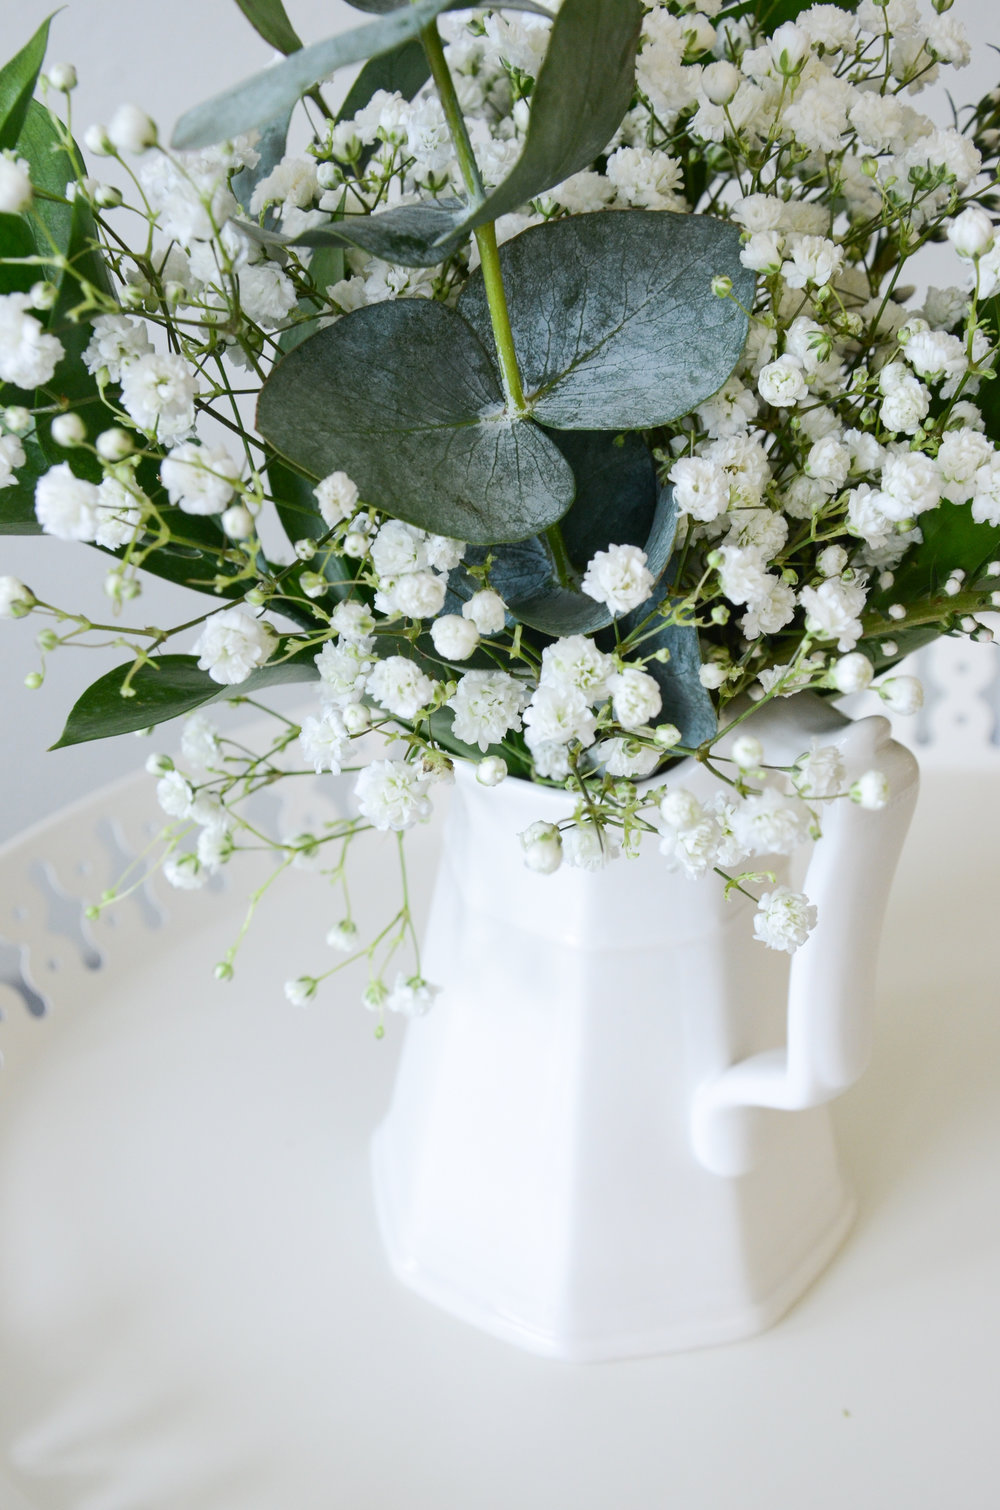 flowers all white pitcher close up.jpg